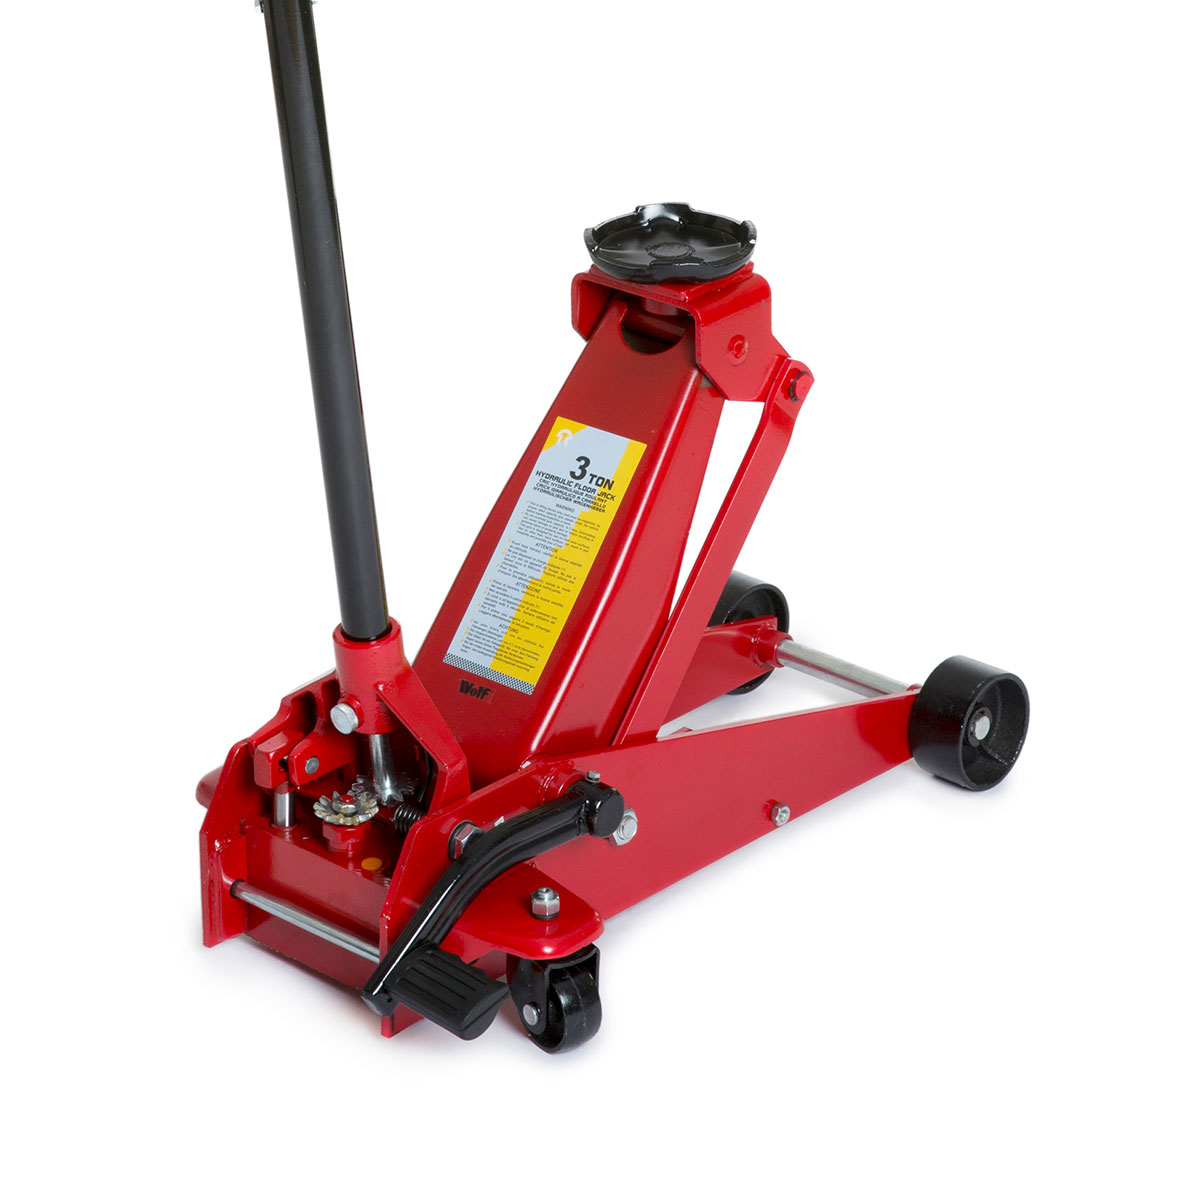 Wolf 3 Tonne Trolley Floor Hydraulic Jack Heavy Duty 42kg Quick Lift Foot Lever 5060433390654  eBay